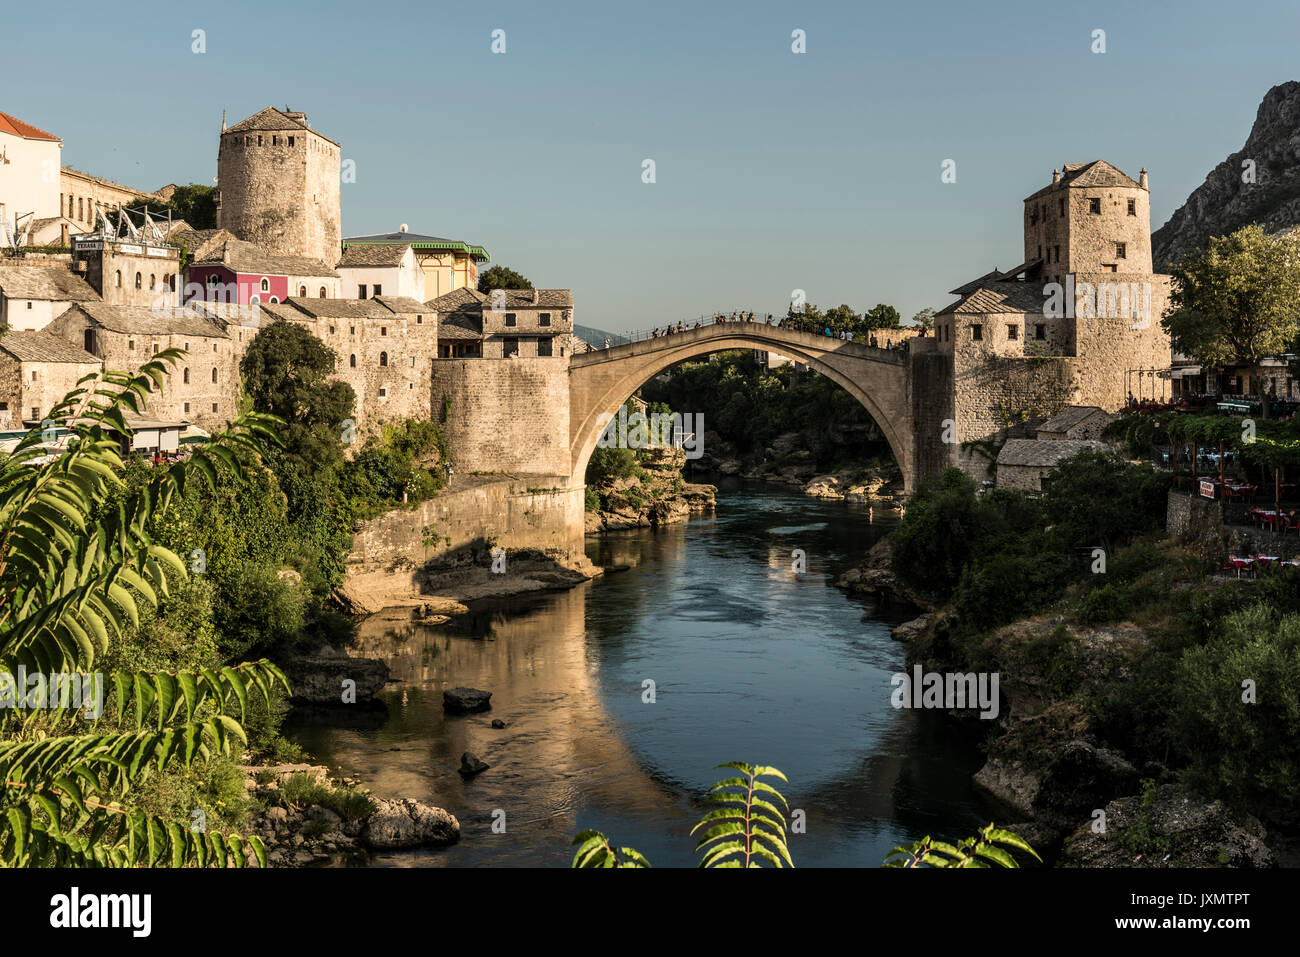 Stari Most, Mostar, Federation of Bosnia and Herzegovina, Bosnia and Herzegovina, Europe - Stock Image